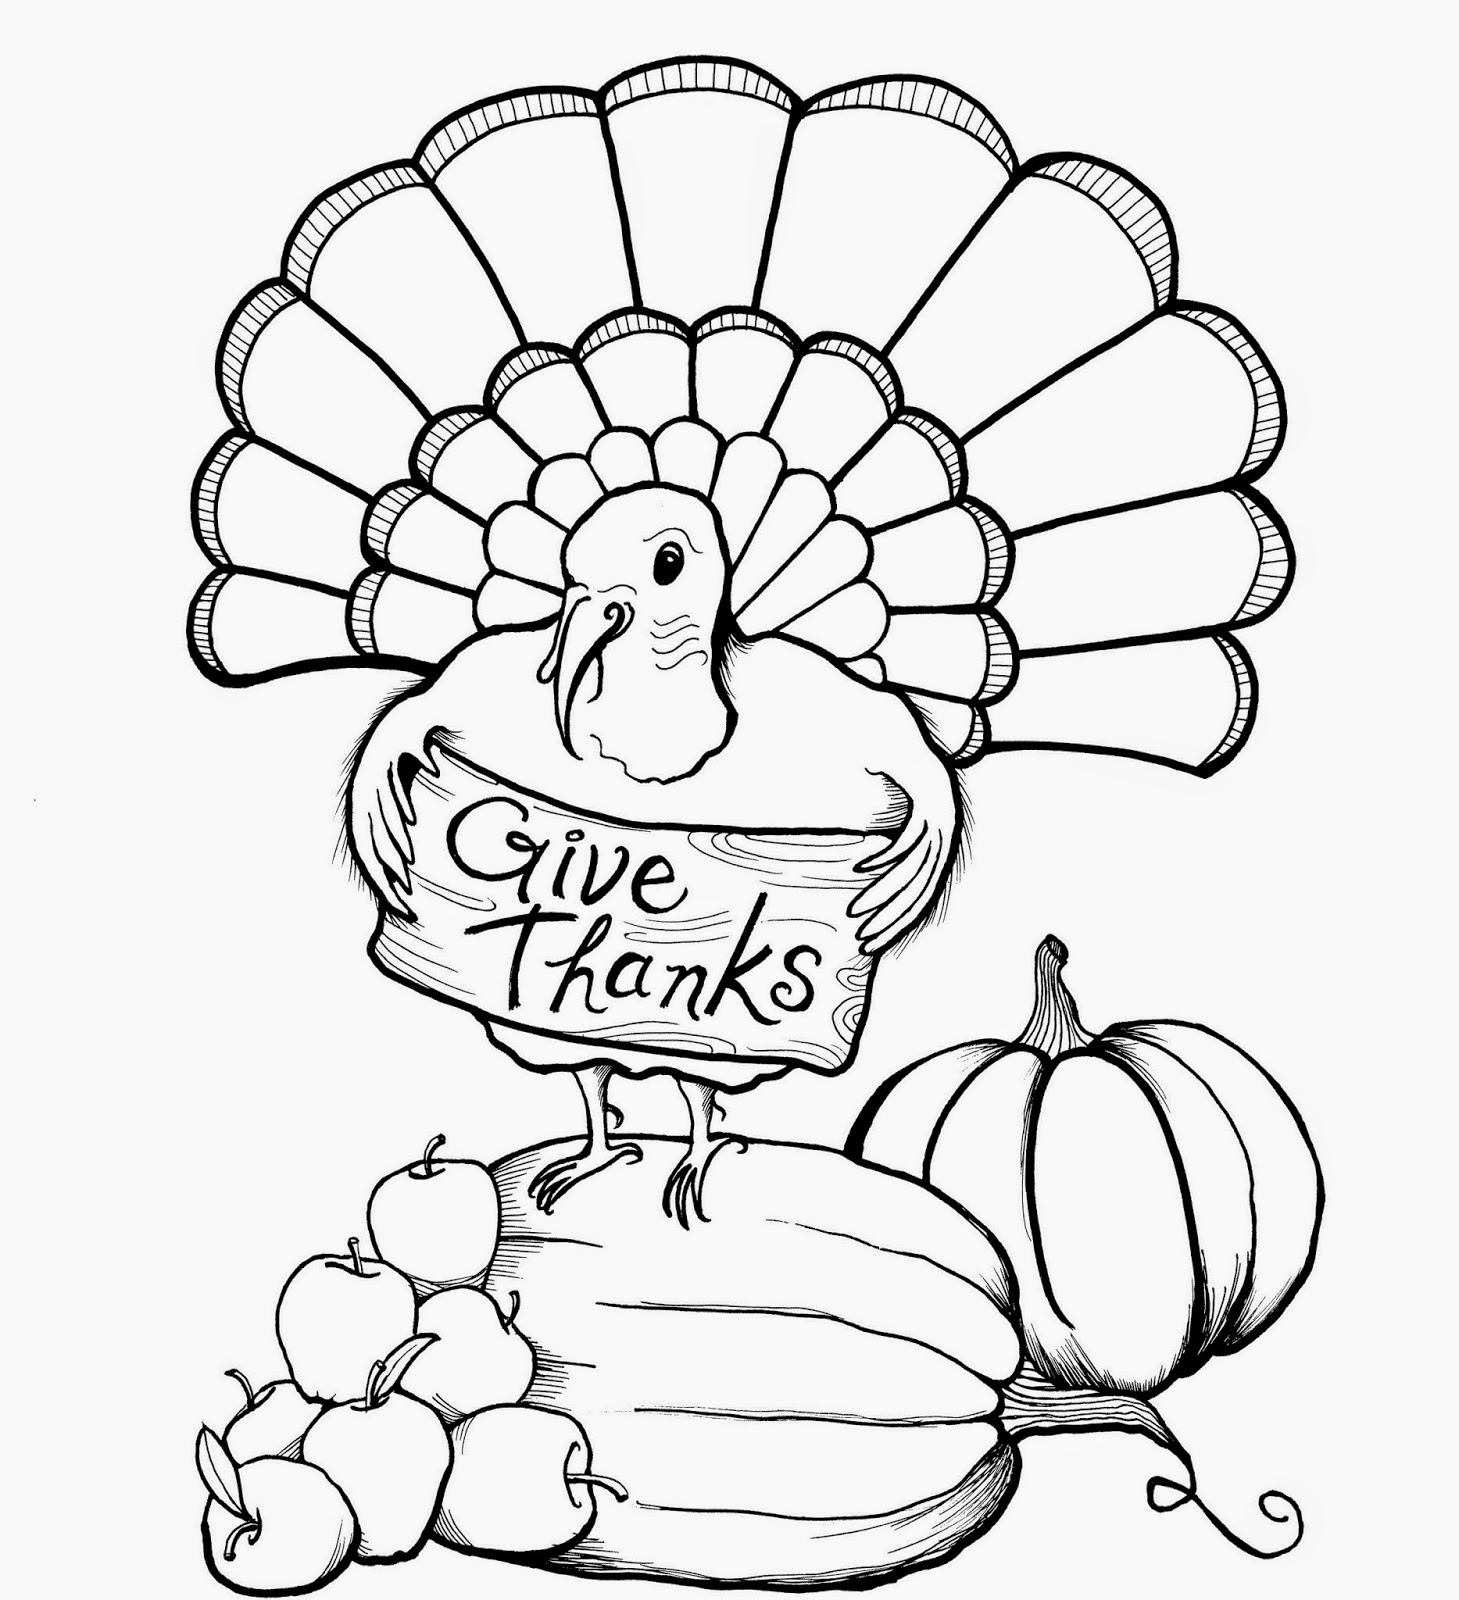 cute thanksgiving turkey coloring pages - photo#9